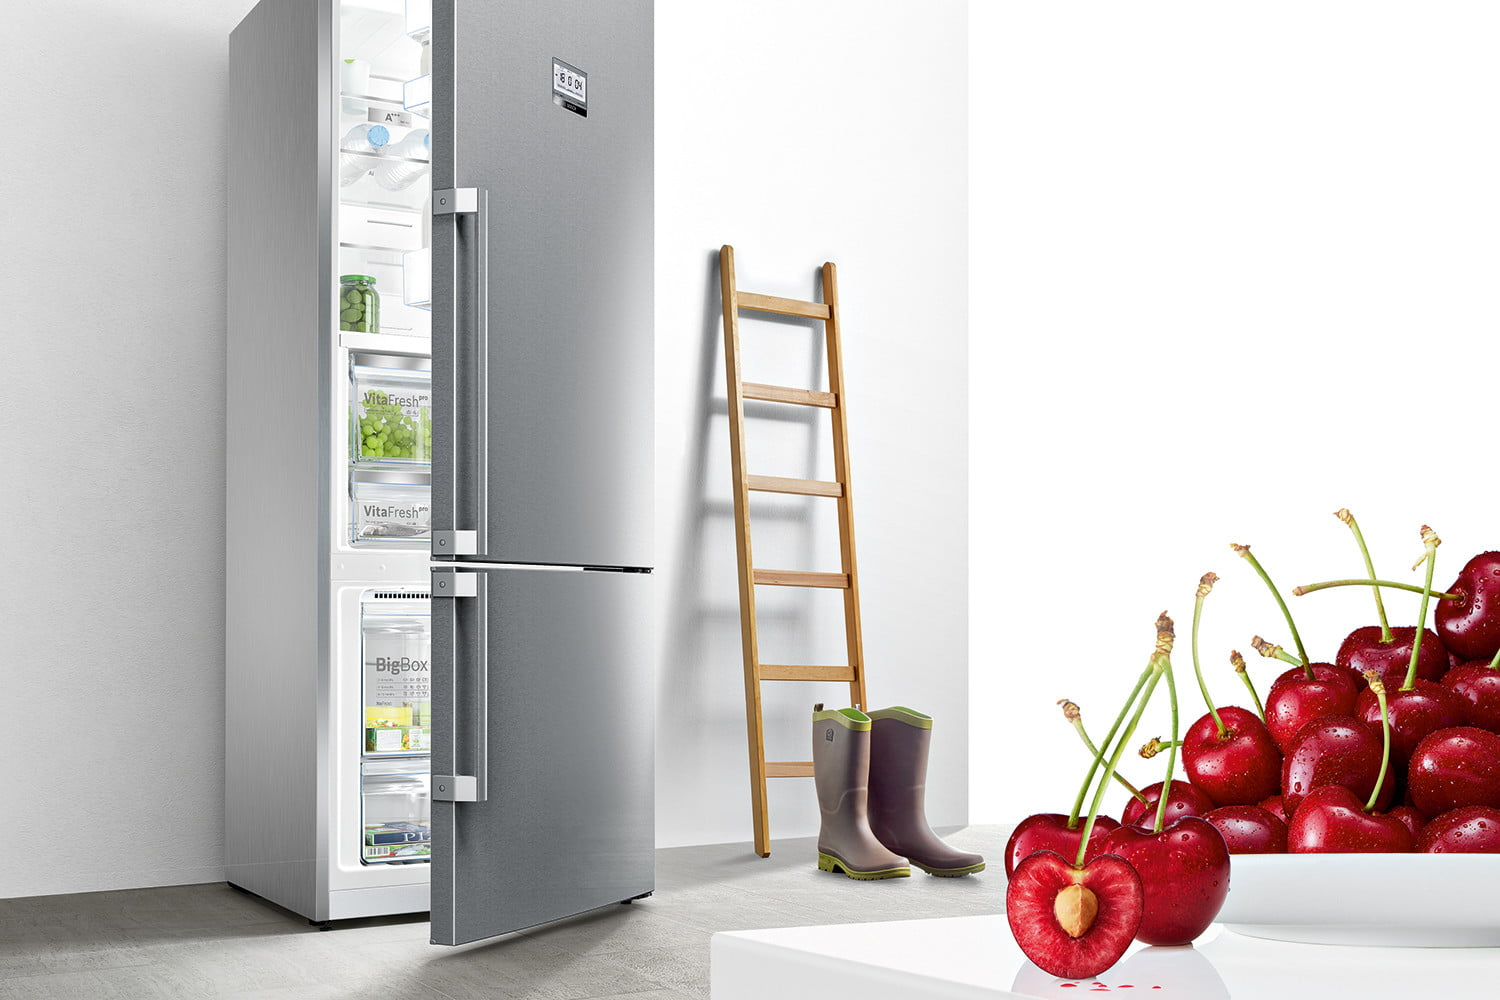 Bosch Reveals New Linup Of Cooktops Fridges And More